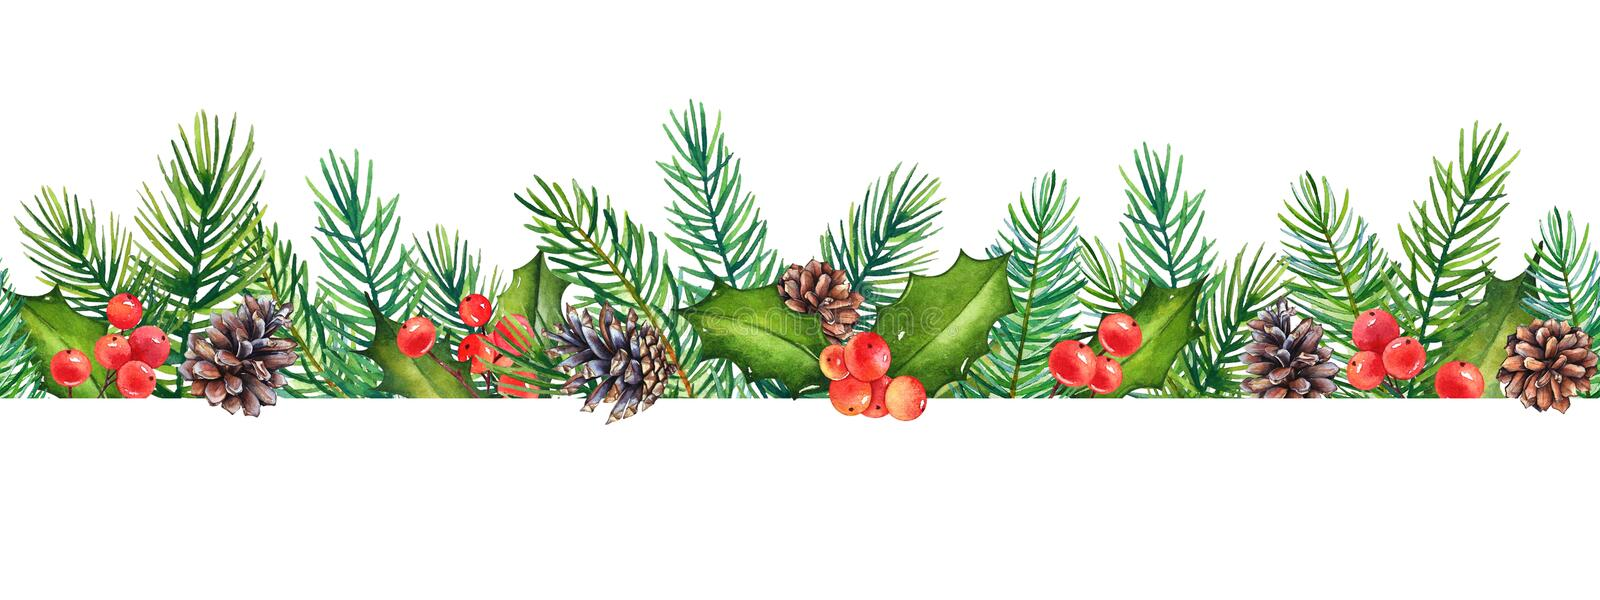 Seamless pattern, decorative Christmas floral element with watercolor branches of holly with berries and pine tree with cones royalty free illustration